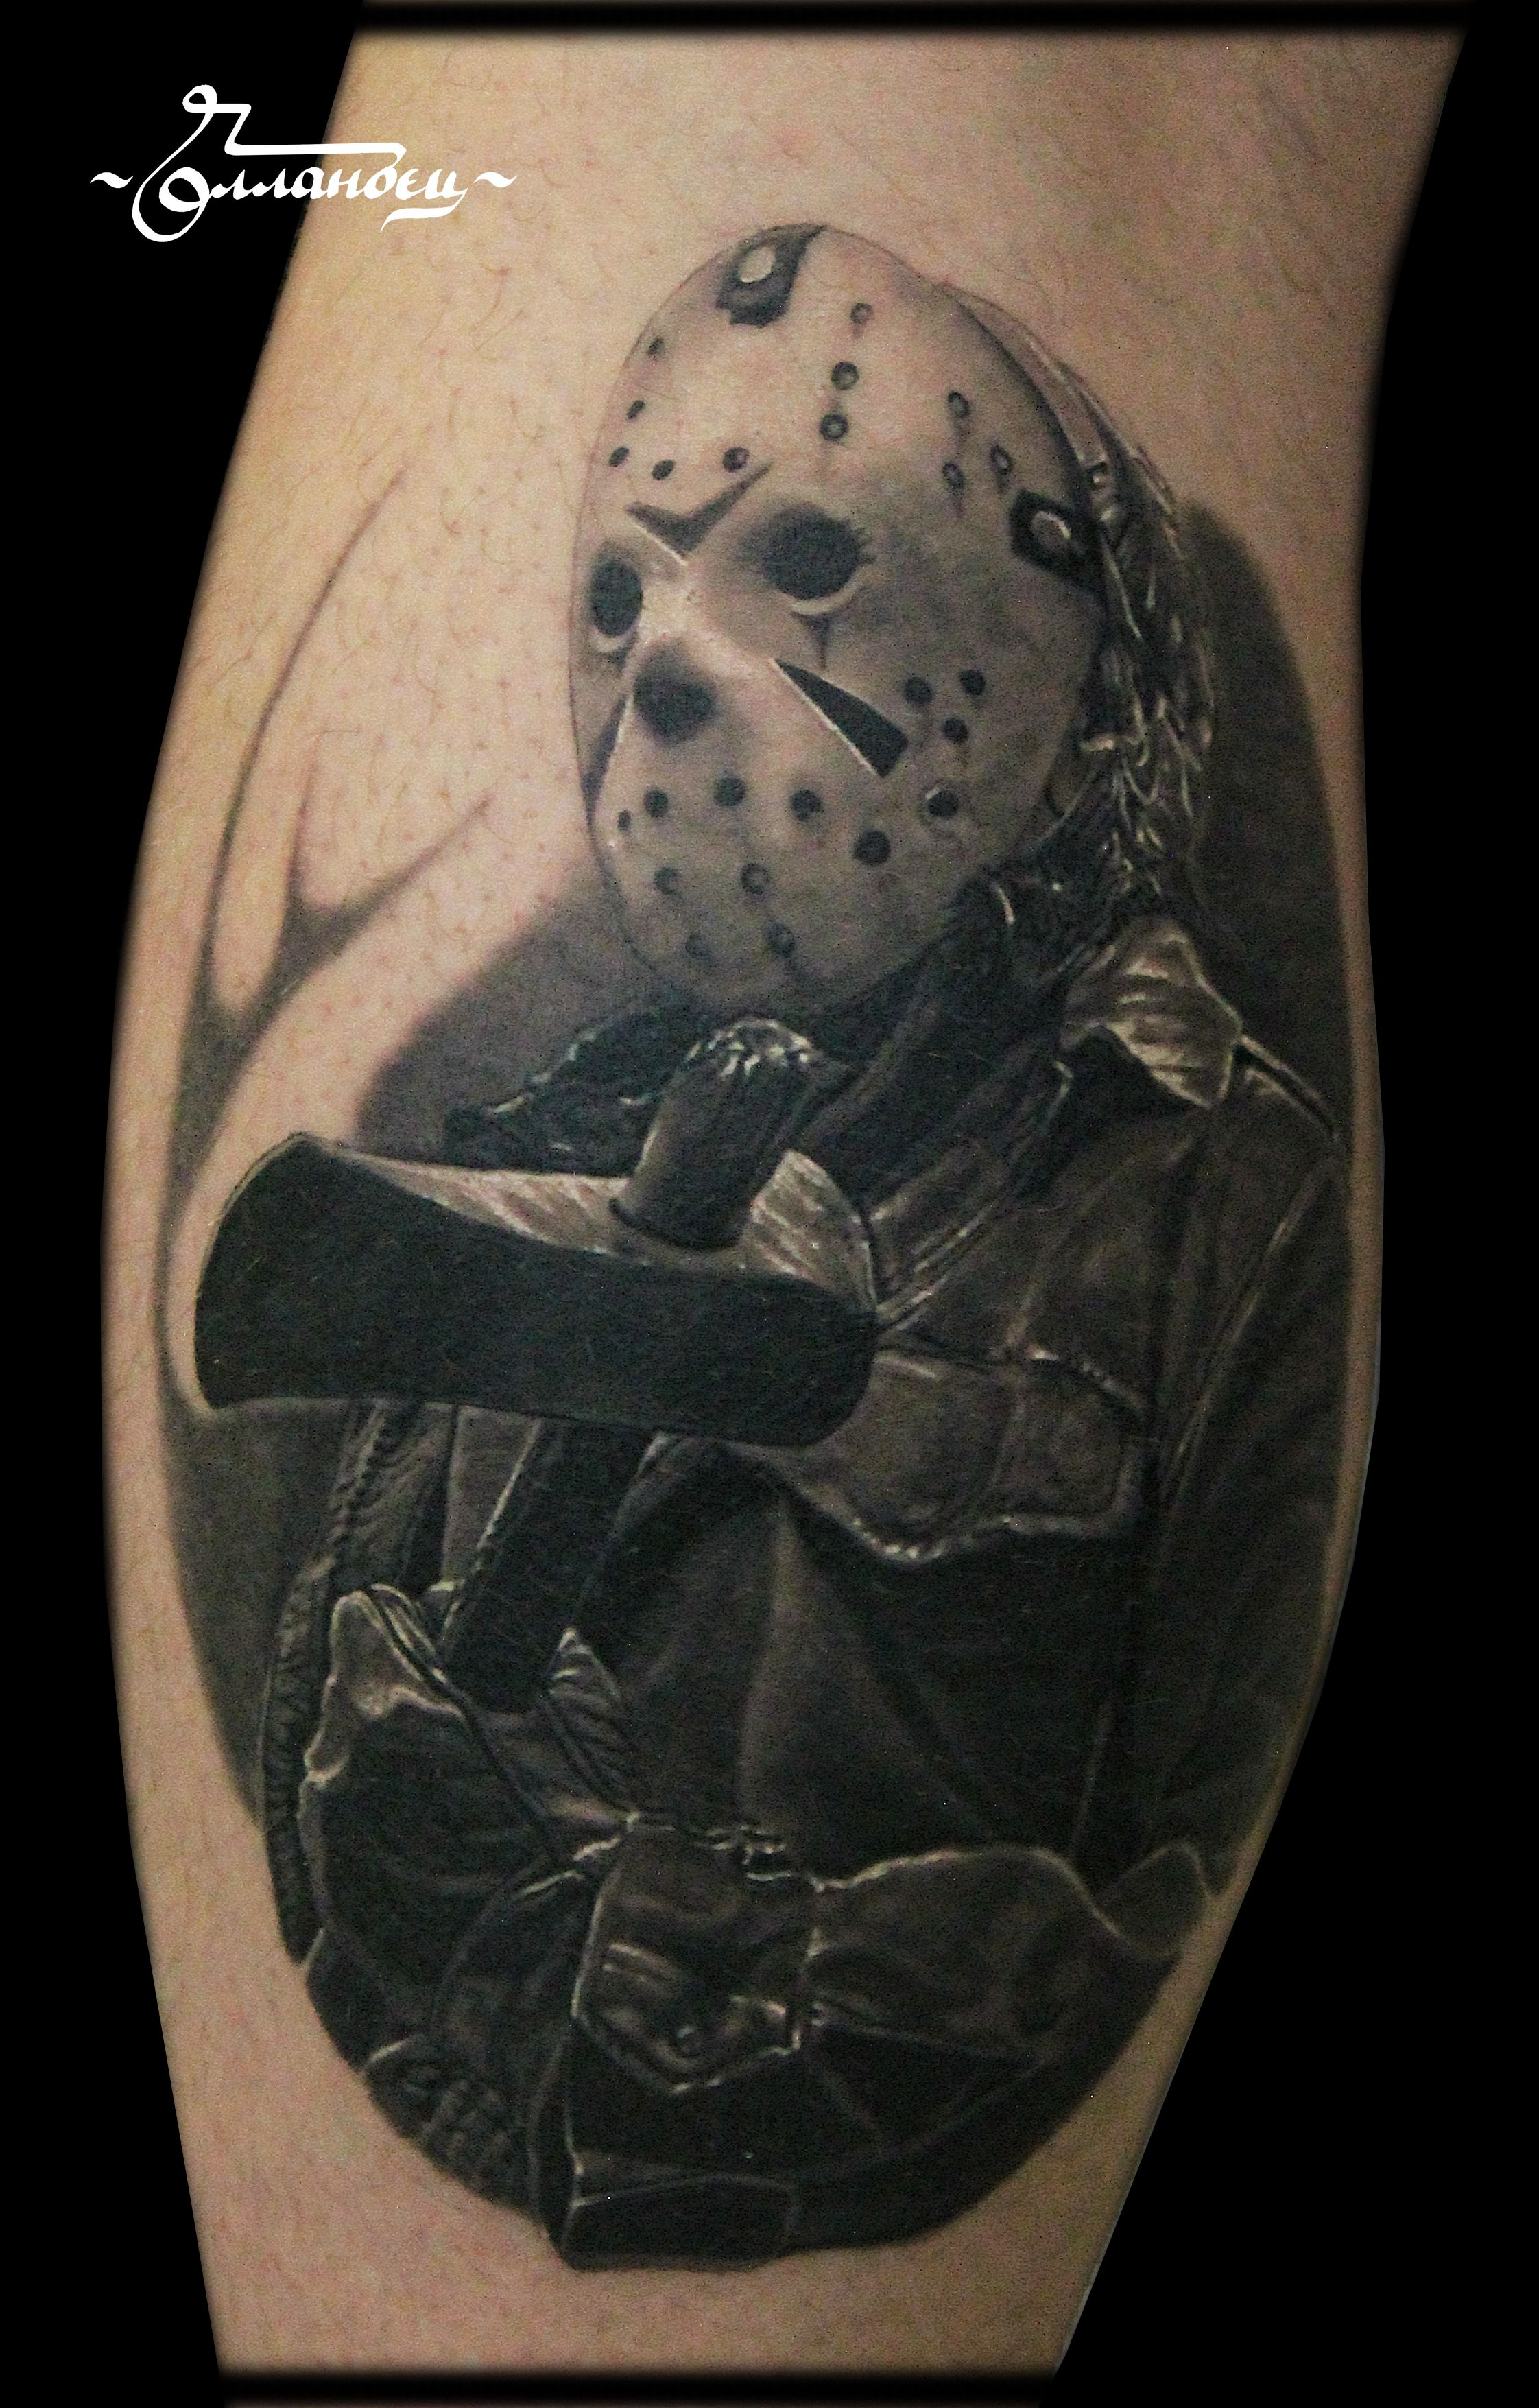 jason voorhees friday the 13th tattoo by gollandets art pinterest jason voorhees tattoo. Black Bedroom Furniture Sets. Home Design Ideas